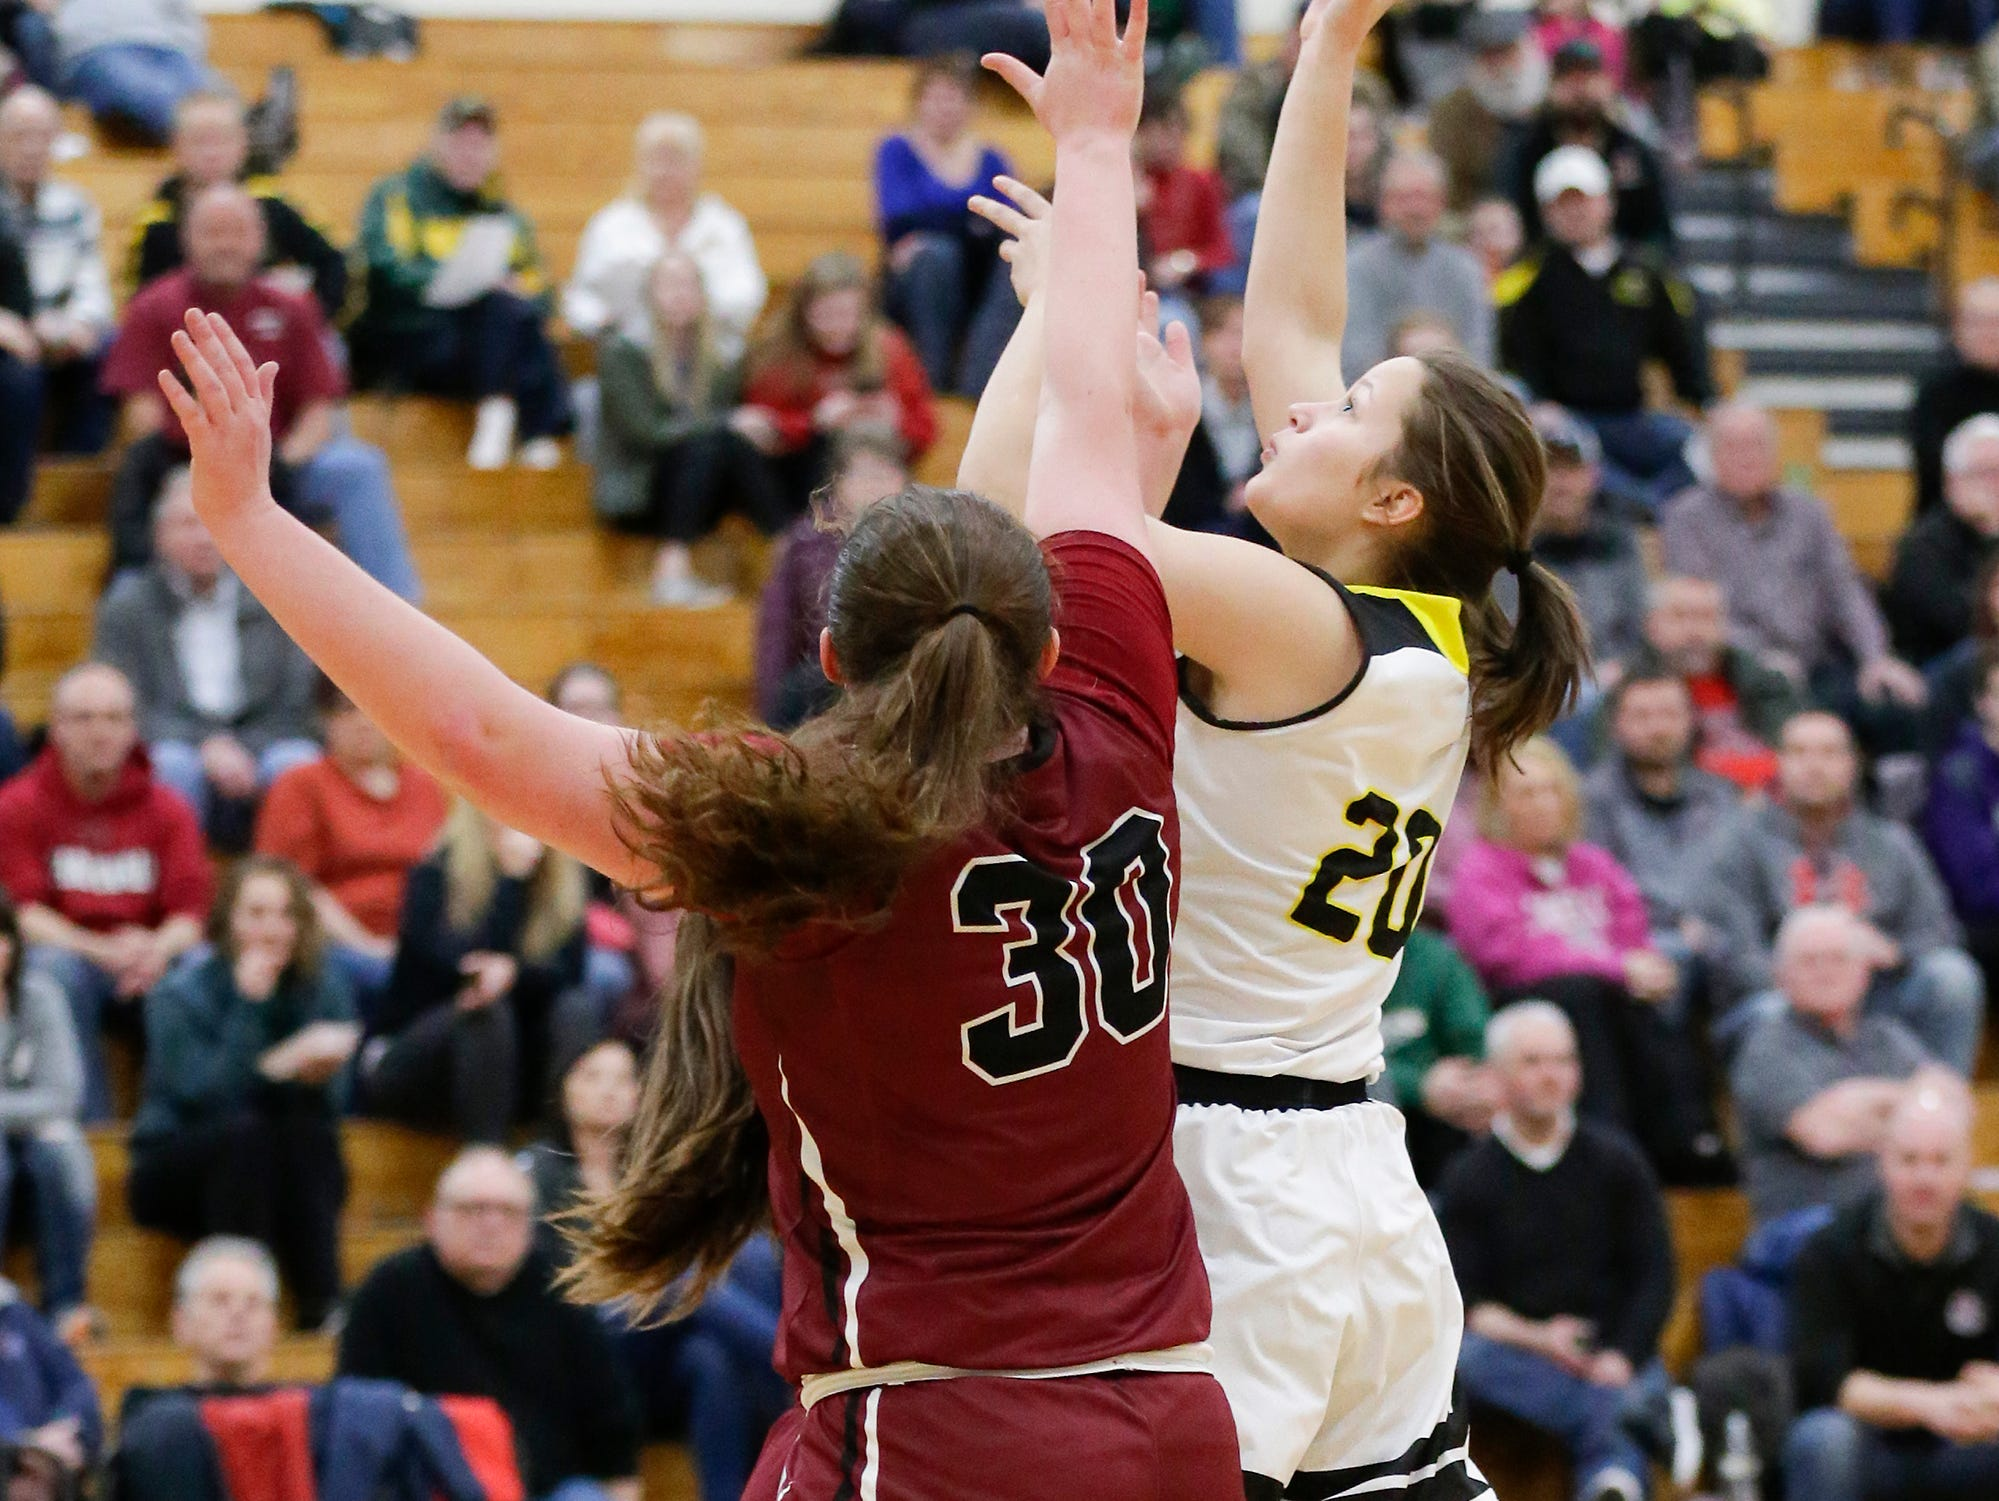 Waupun High School girls basketball's Gaby Matamoros (20) goes up for a shot against Mayville High School's Sydney Schultz (30) Saturday, February 23, 2019 during their WIAA Division 4 sectional quarterfinal game in Waupun. Waupun won the game 62-45. Doug Raflik/USA TODAY NETWORK-Wisconsin